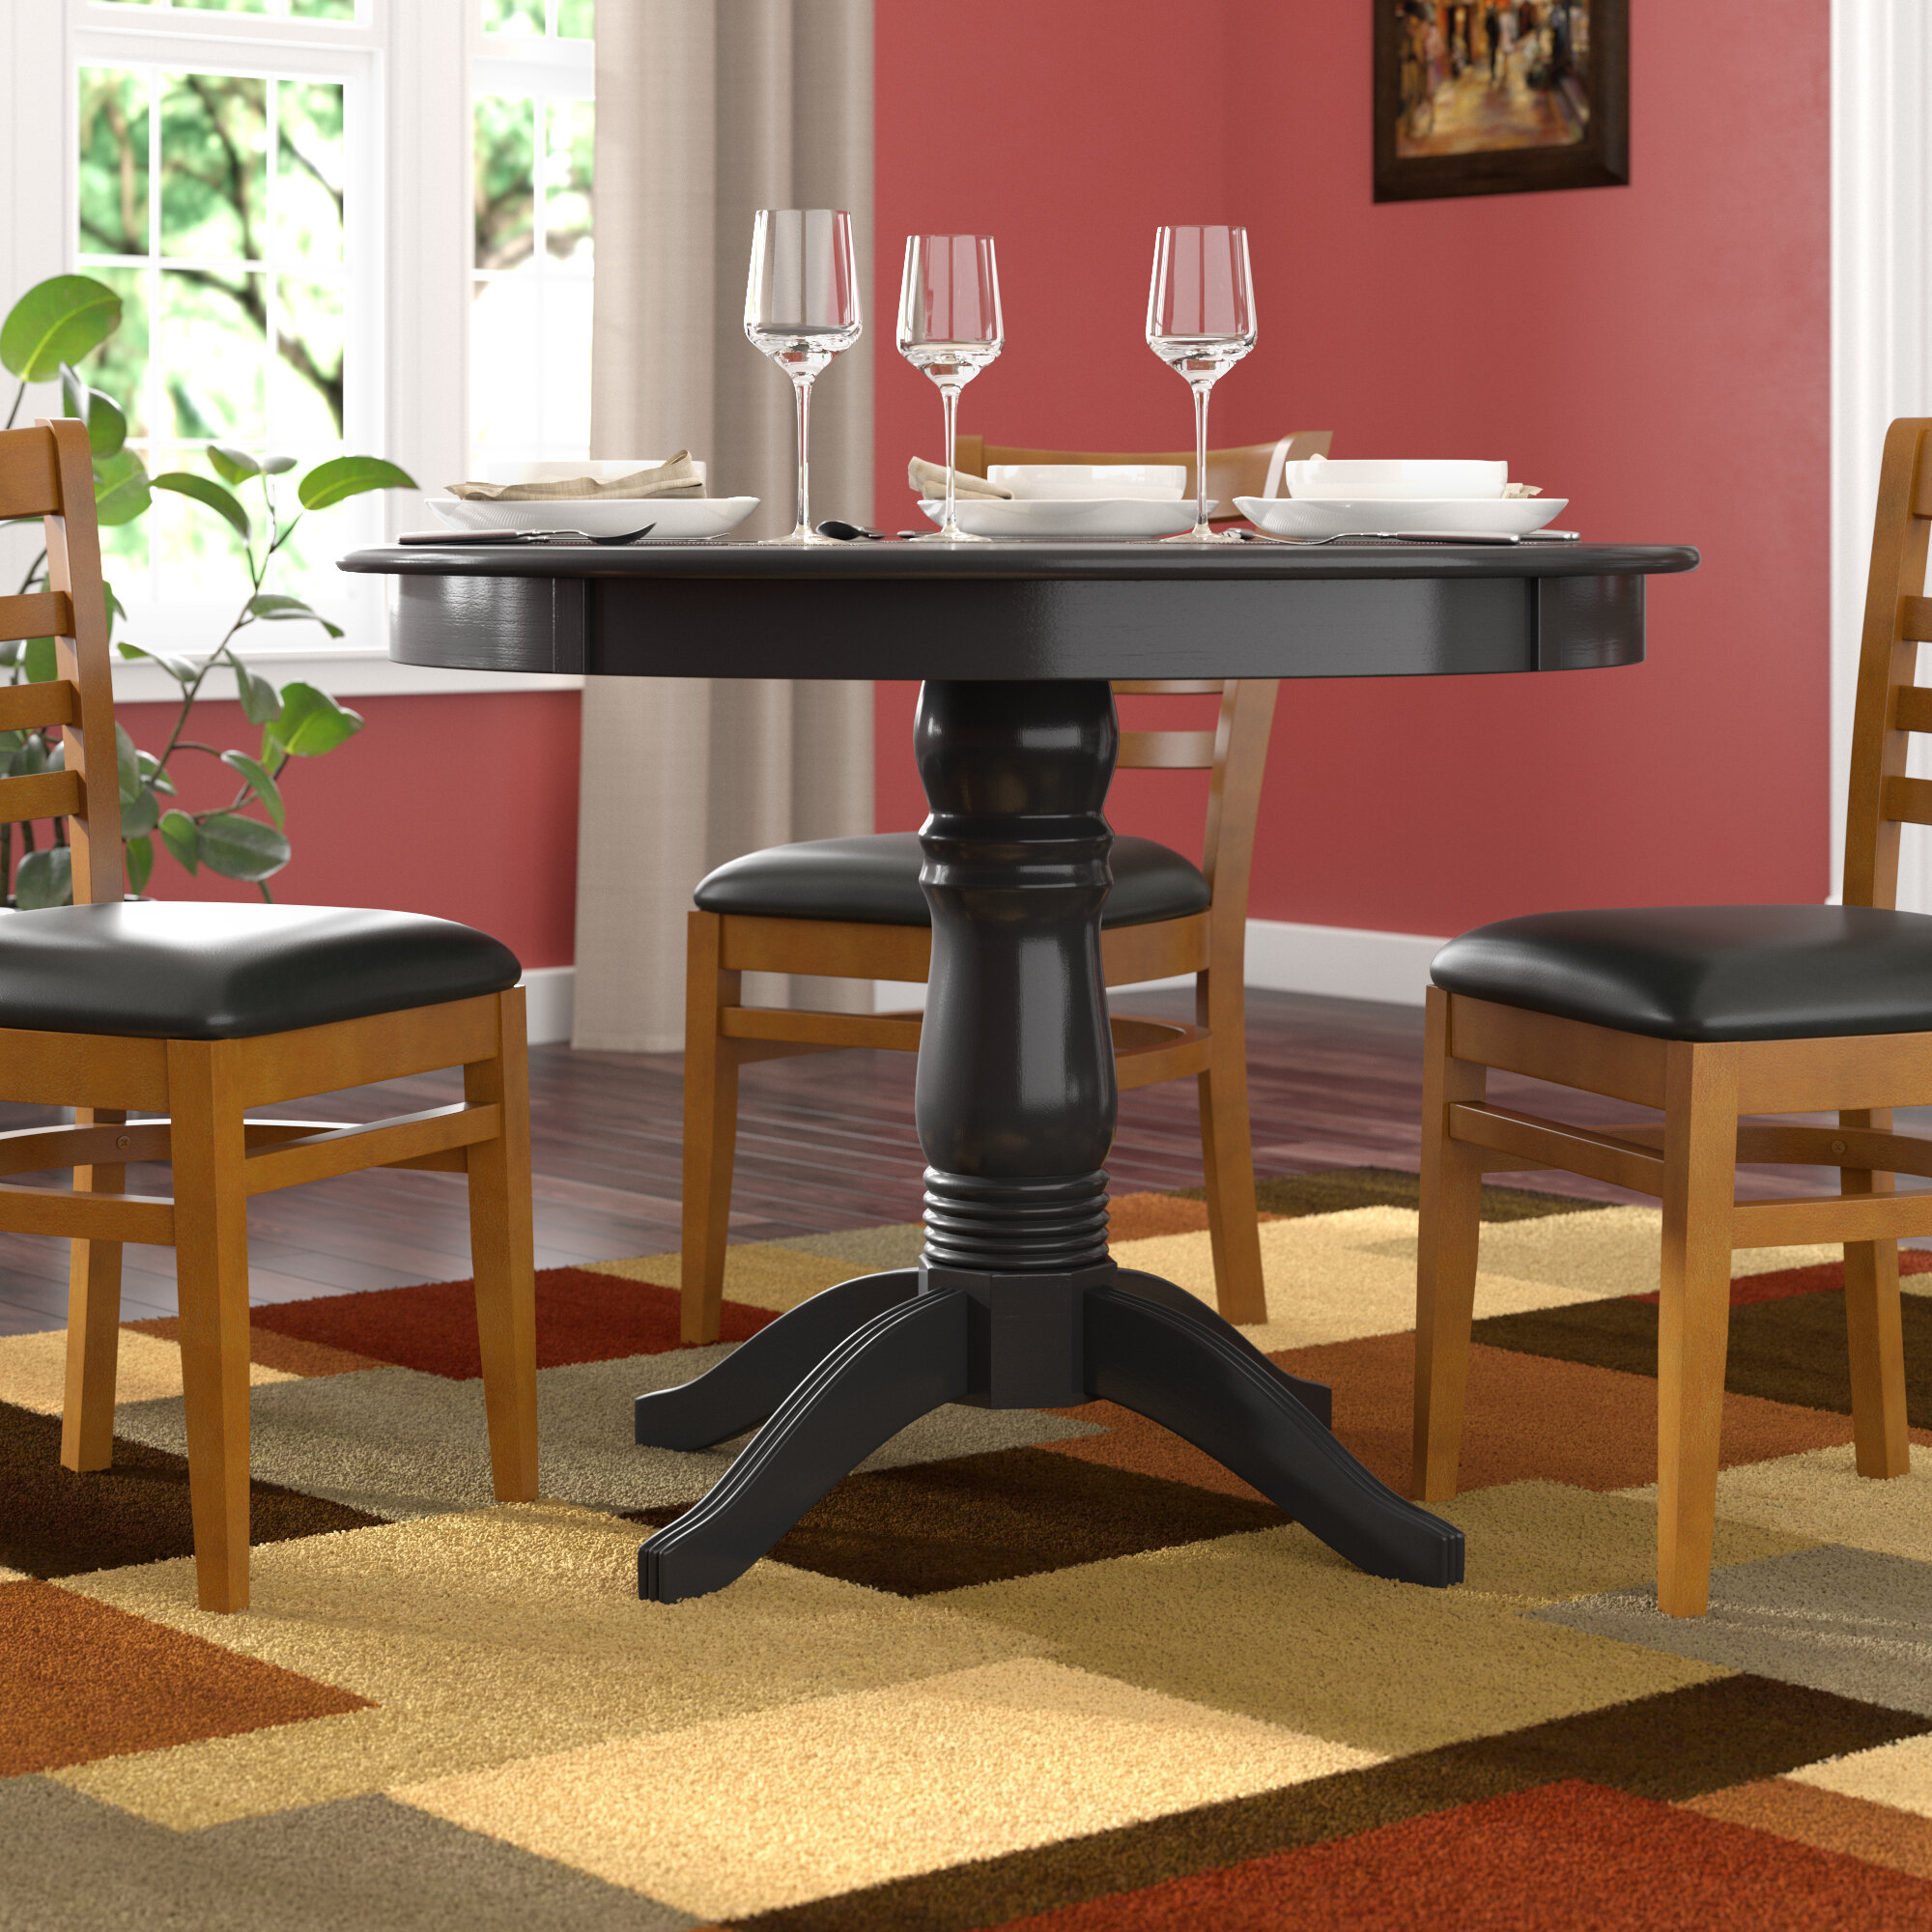 42 Inches Round Dining Tables You Ll